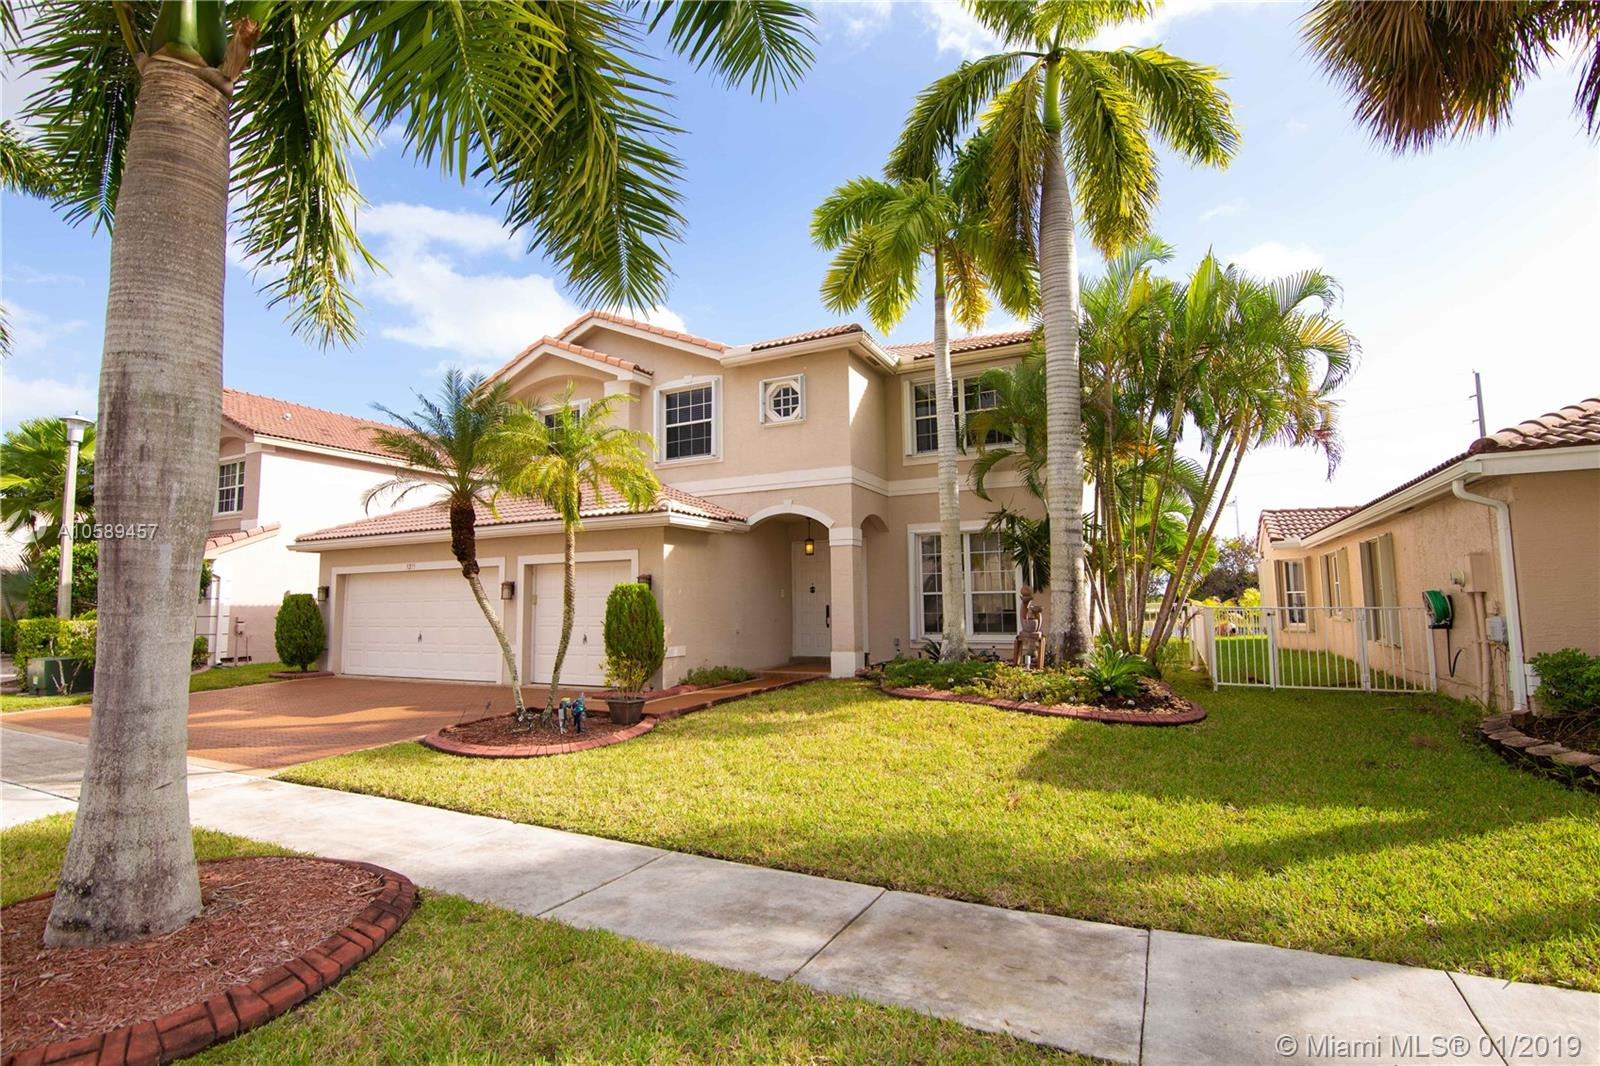 4 Bedroom Homes For Sale In Miramar Fl - 16.15.kaartenstemp.nl • - Map Of Homes For Sale In Florida